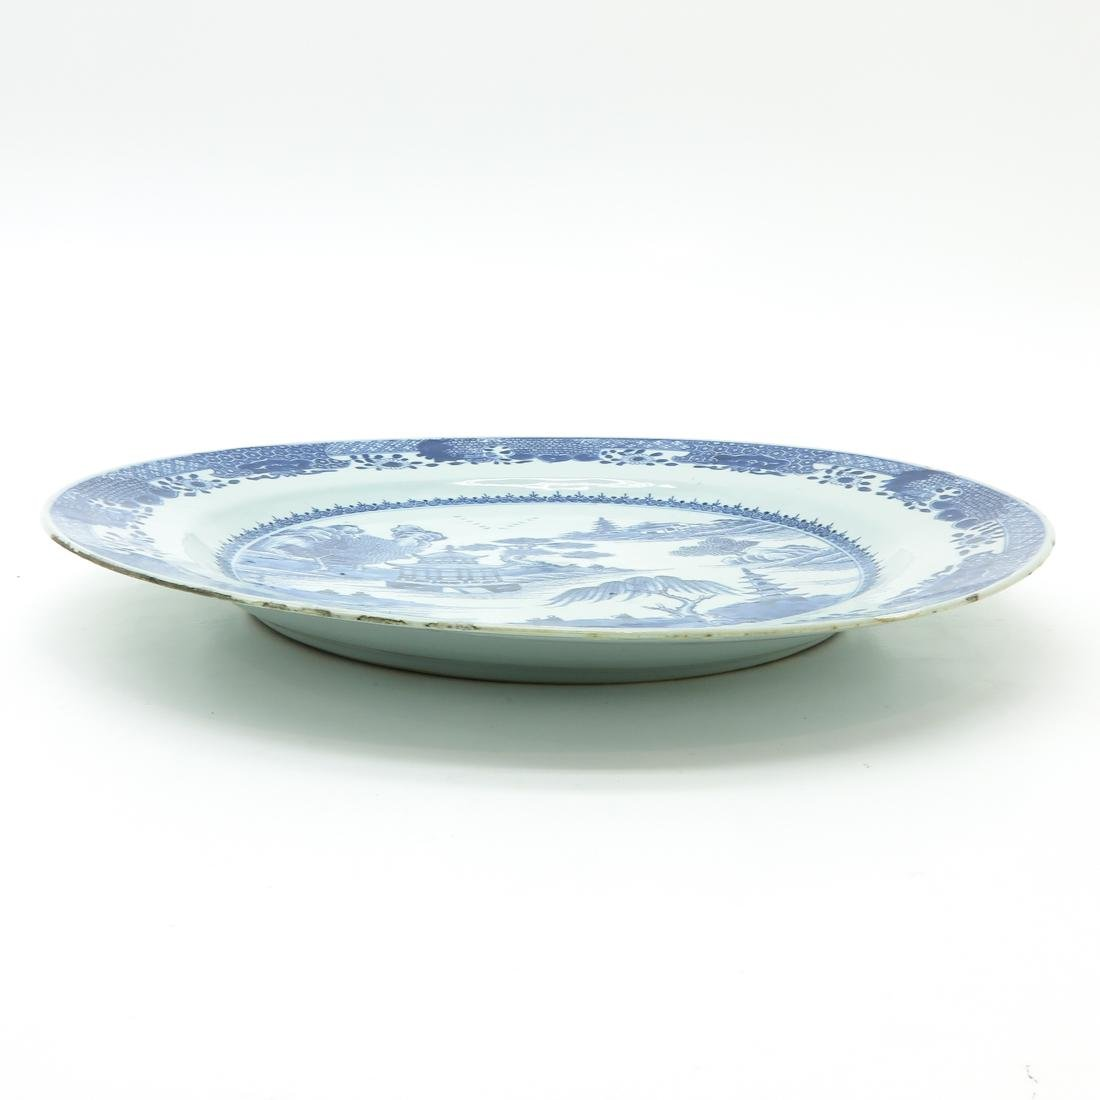 Large Plate - 3